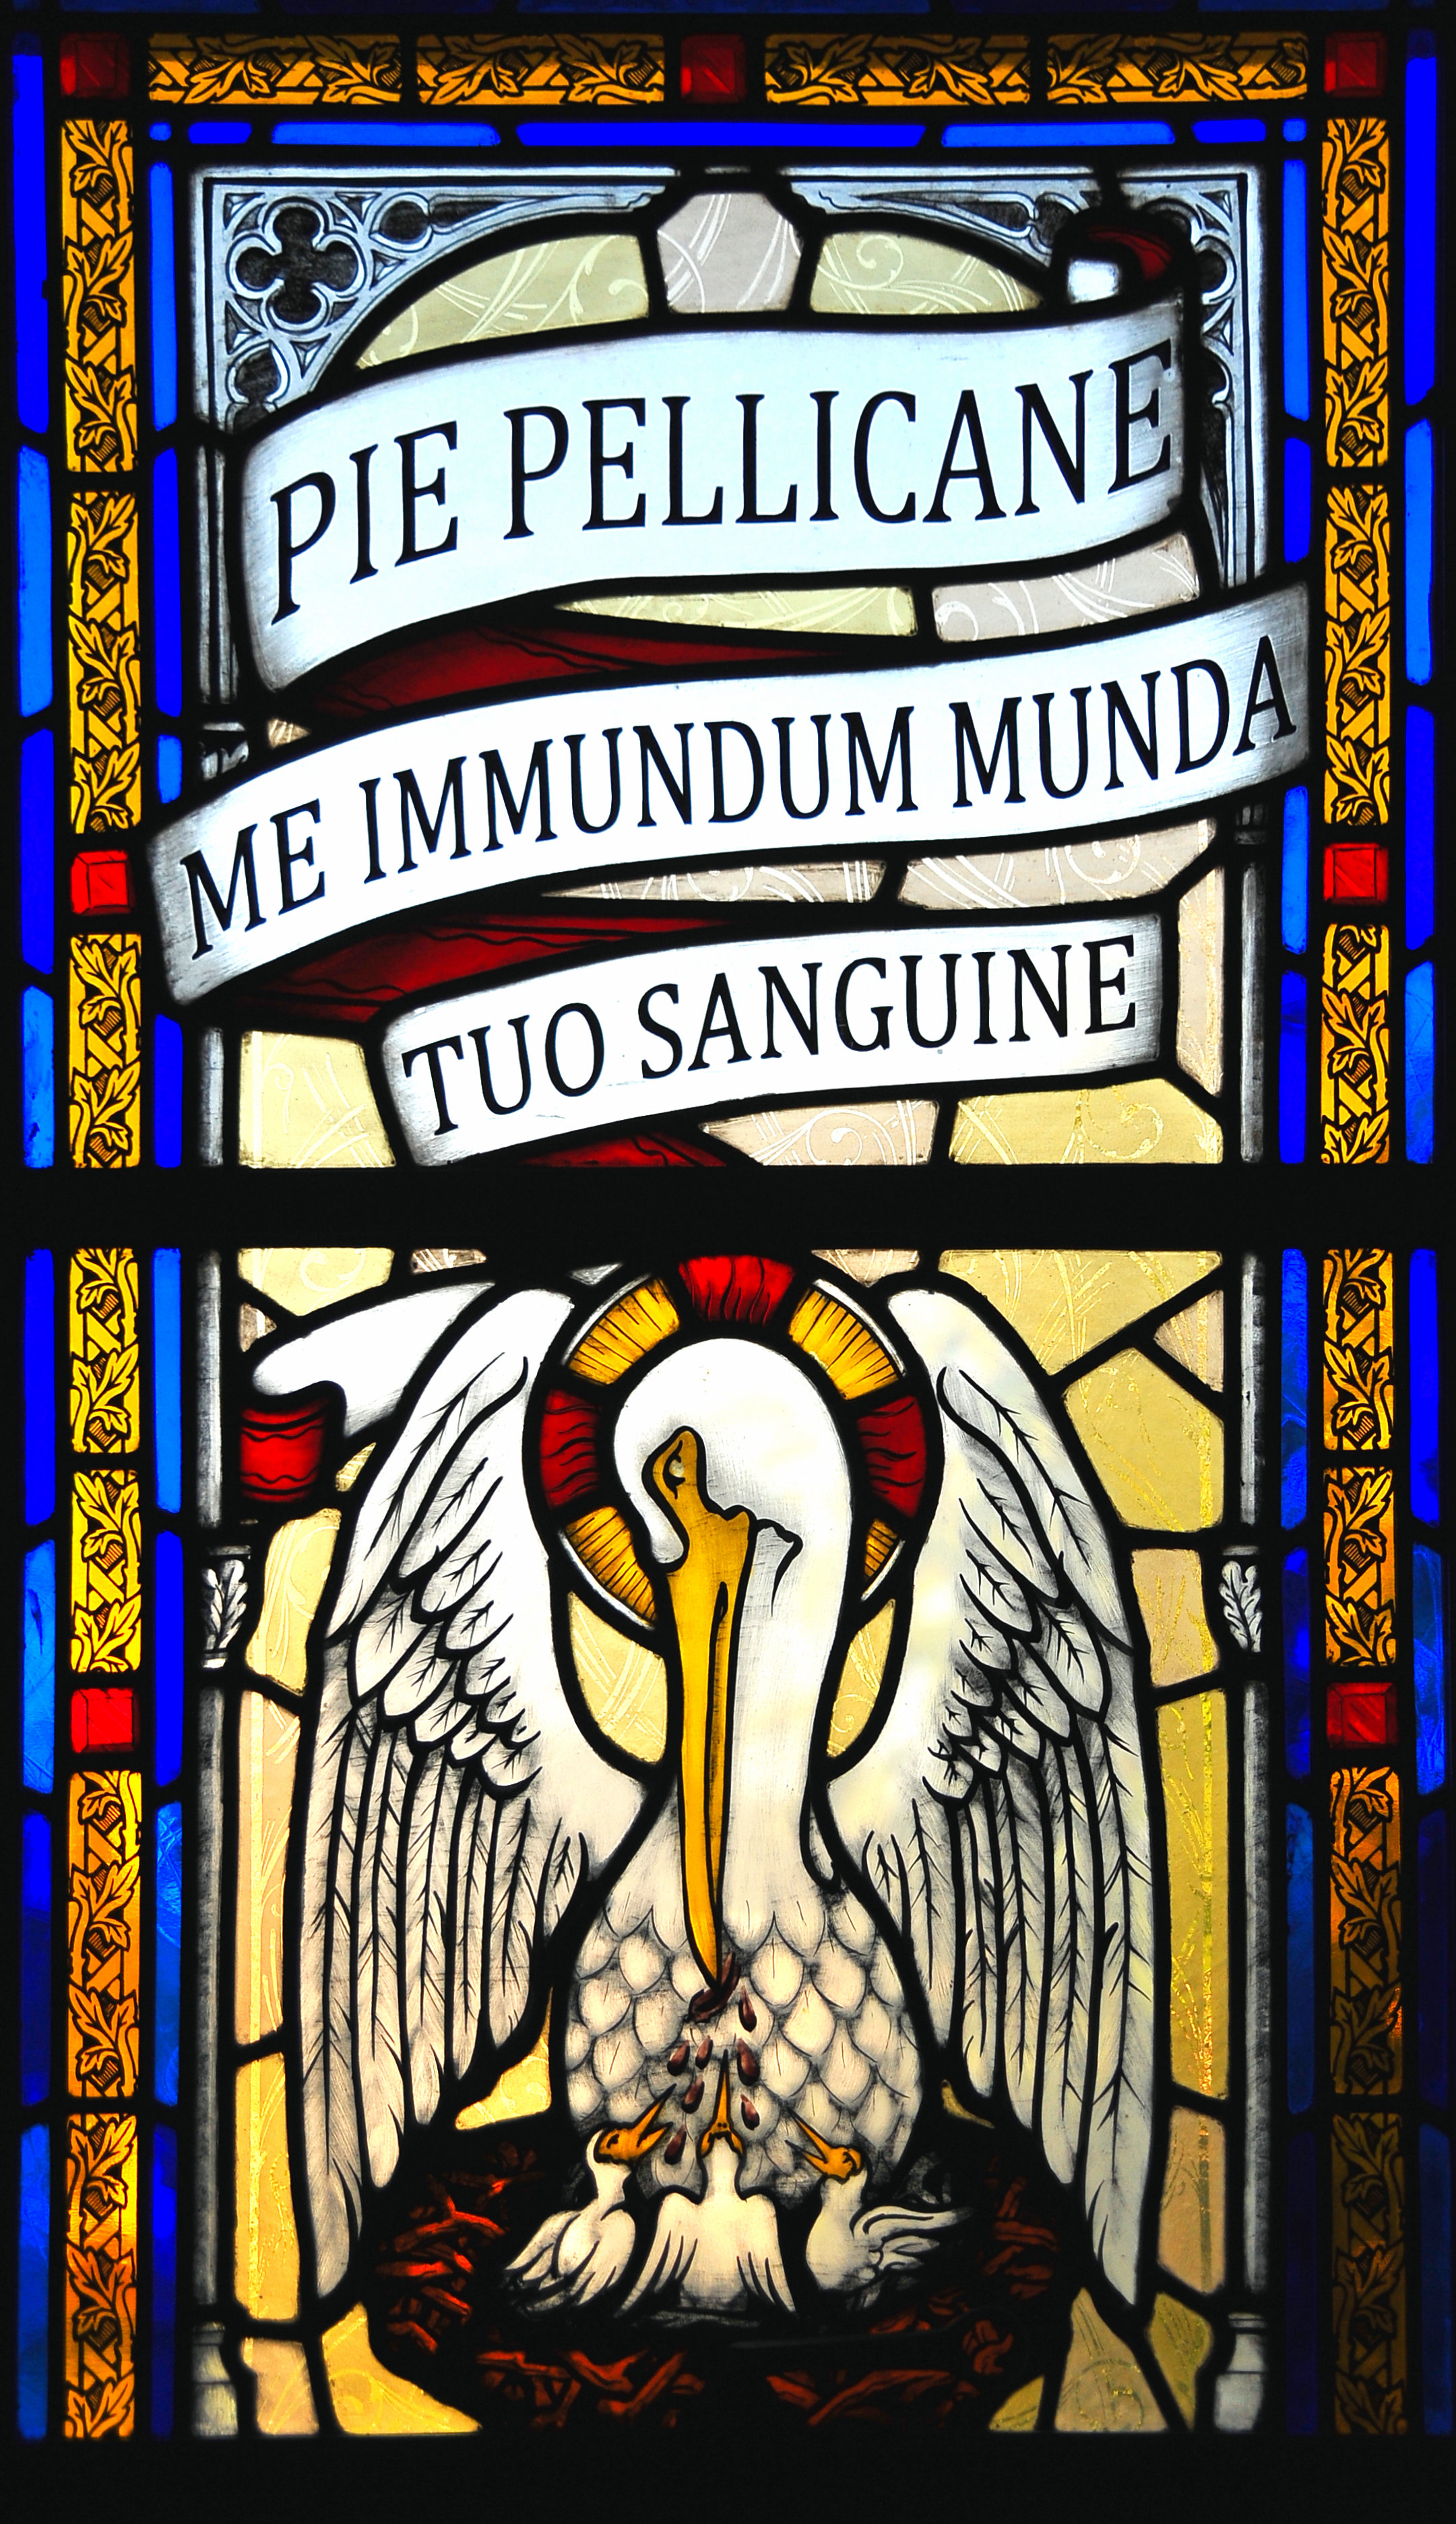 Sacristy Window